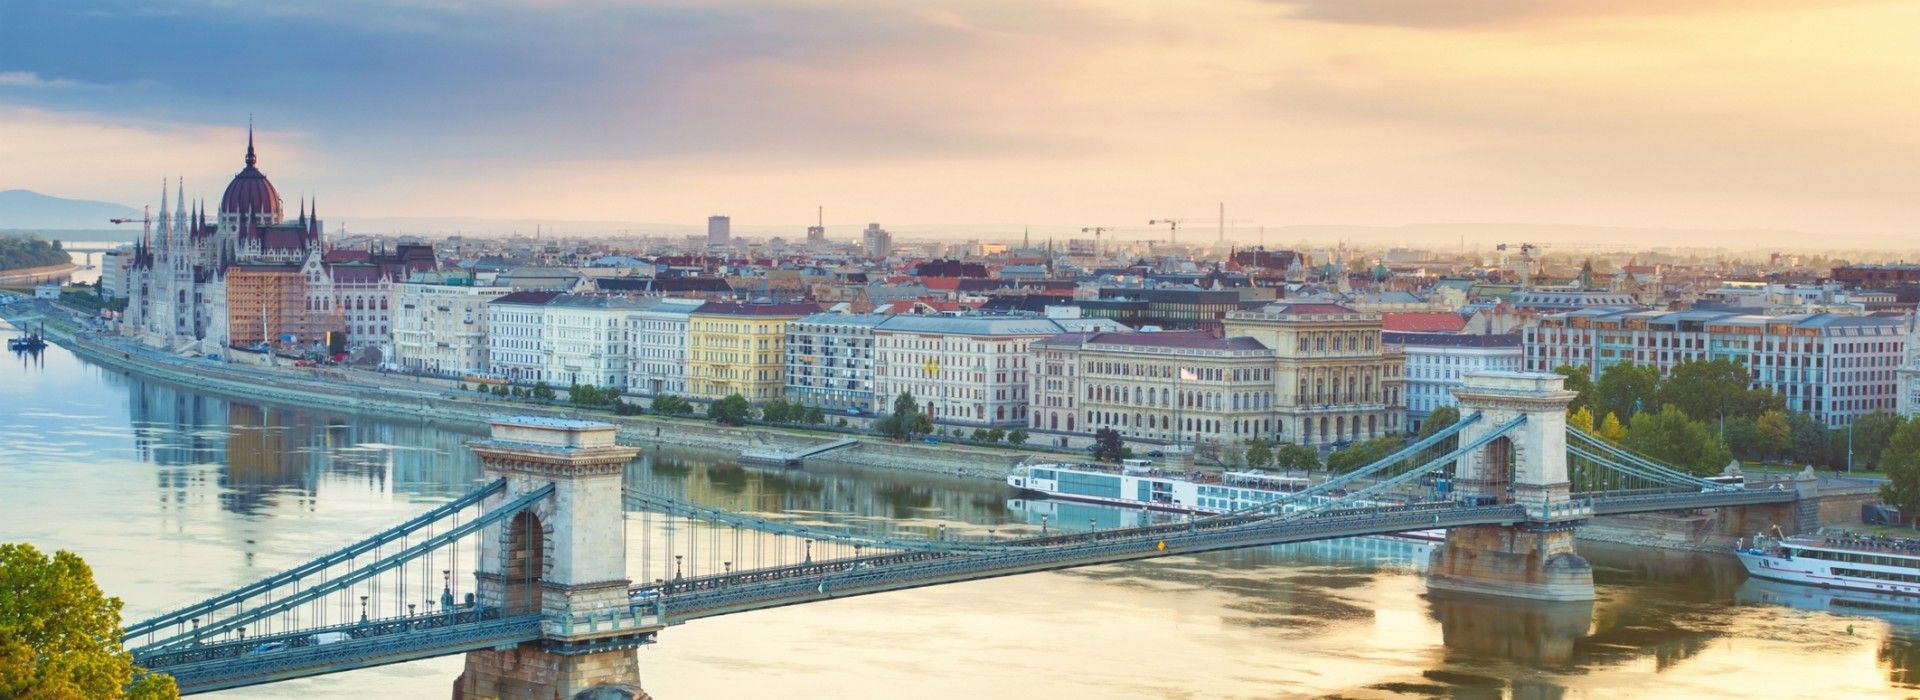 Cultural, religious and historic sites Tours in Budapest